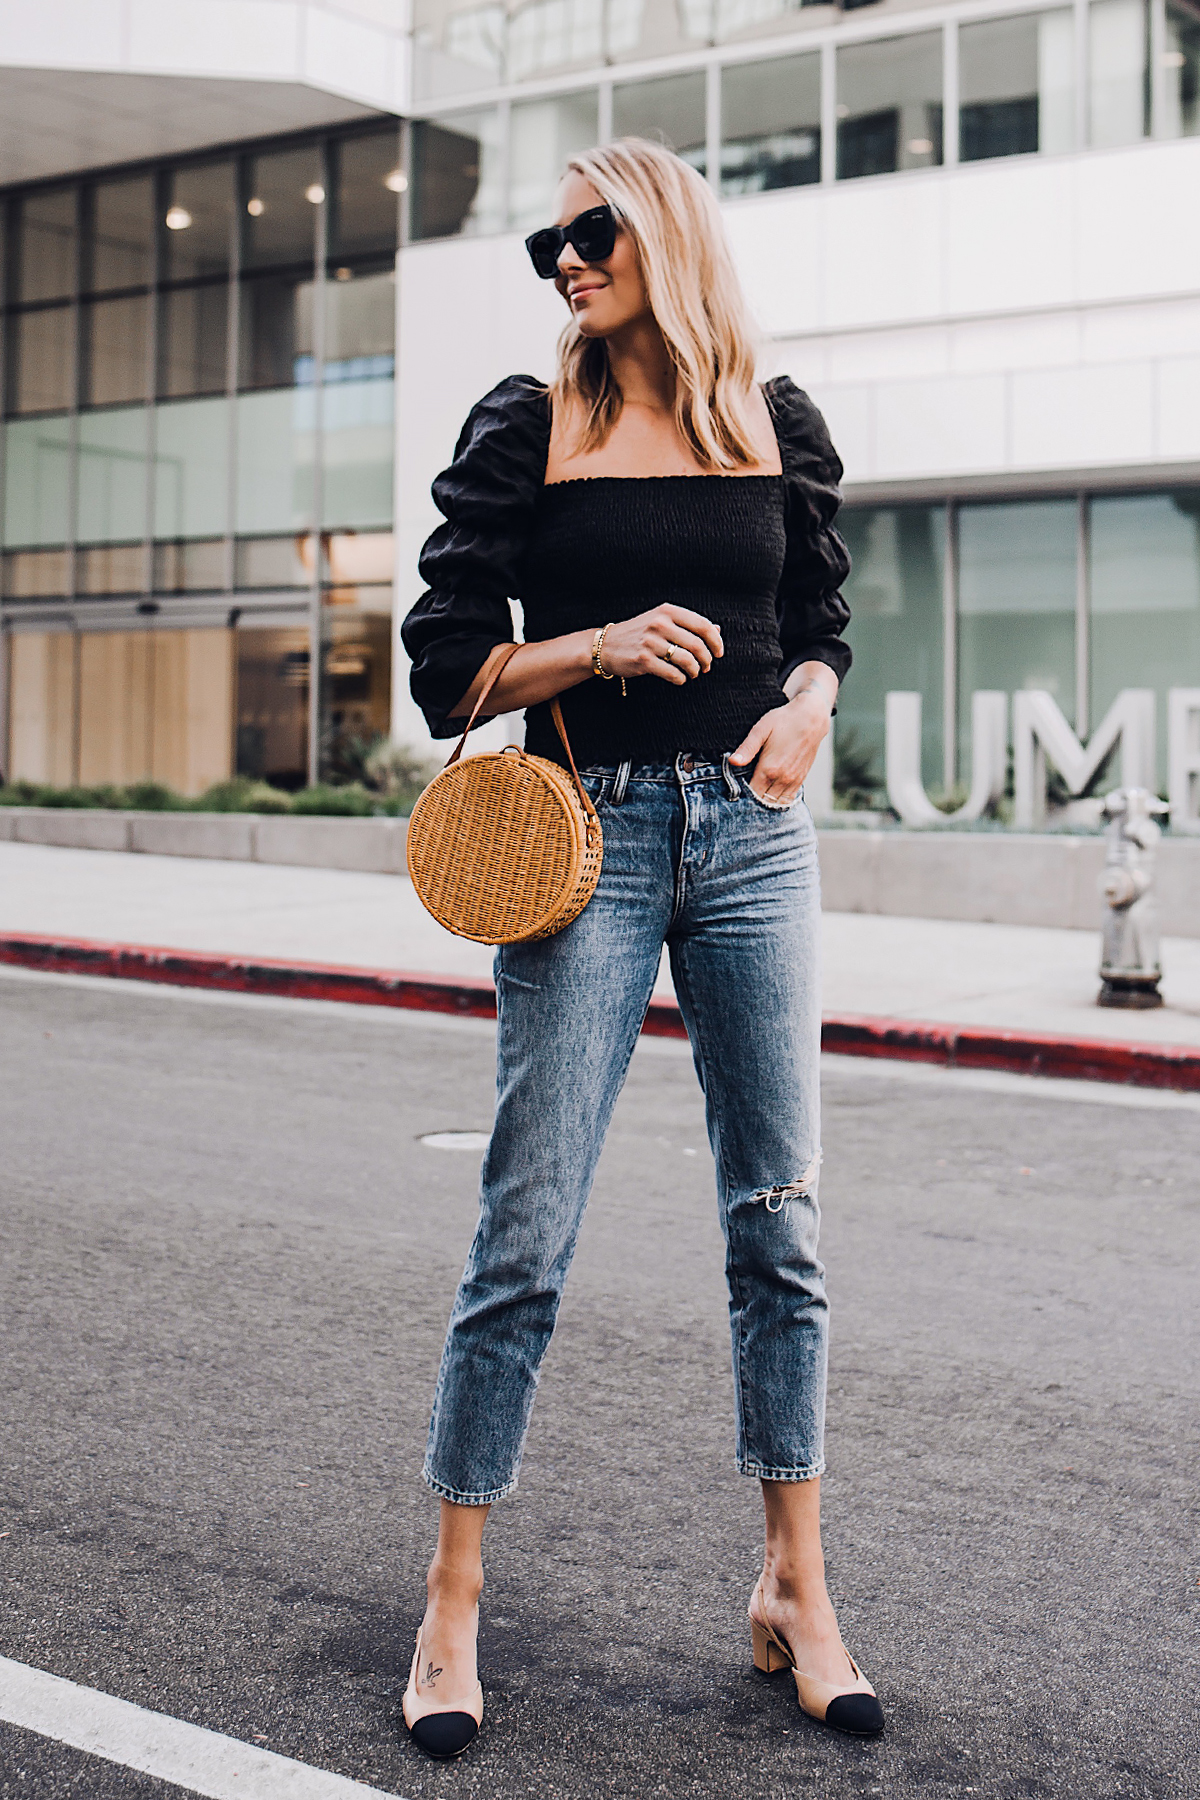 Blonde Woman Wearing Fashion Jackson Reformation Gala Top Black Straight Leg Ripped Jeans Chanel Slingback Shoes Cane Circle Straw Handbag Black Sunglasses Fashion Jackson San Diego Fashion Blogger Street Style